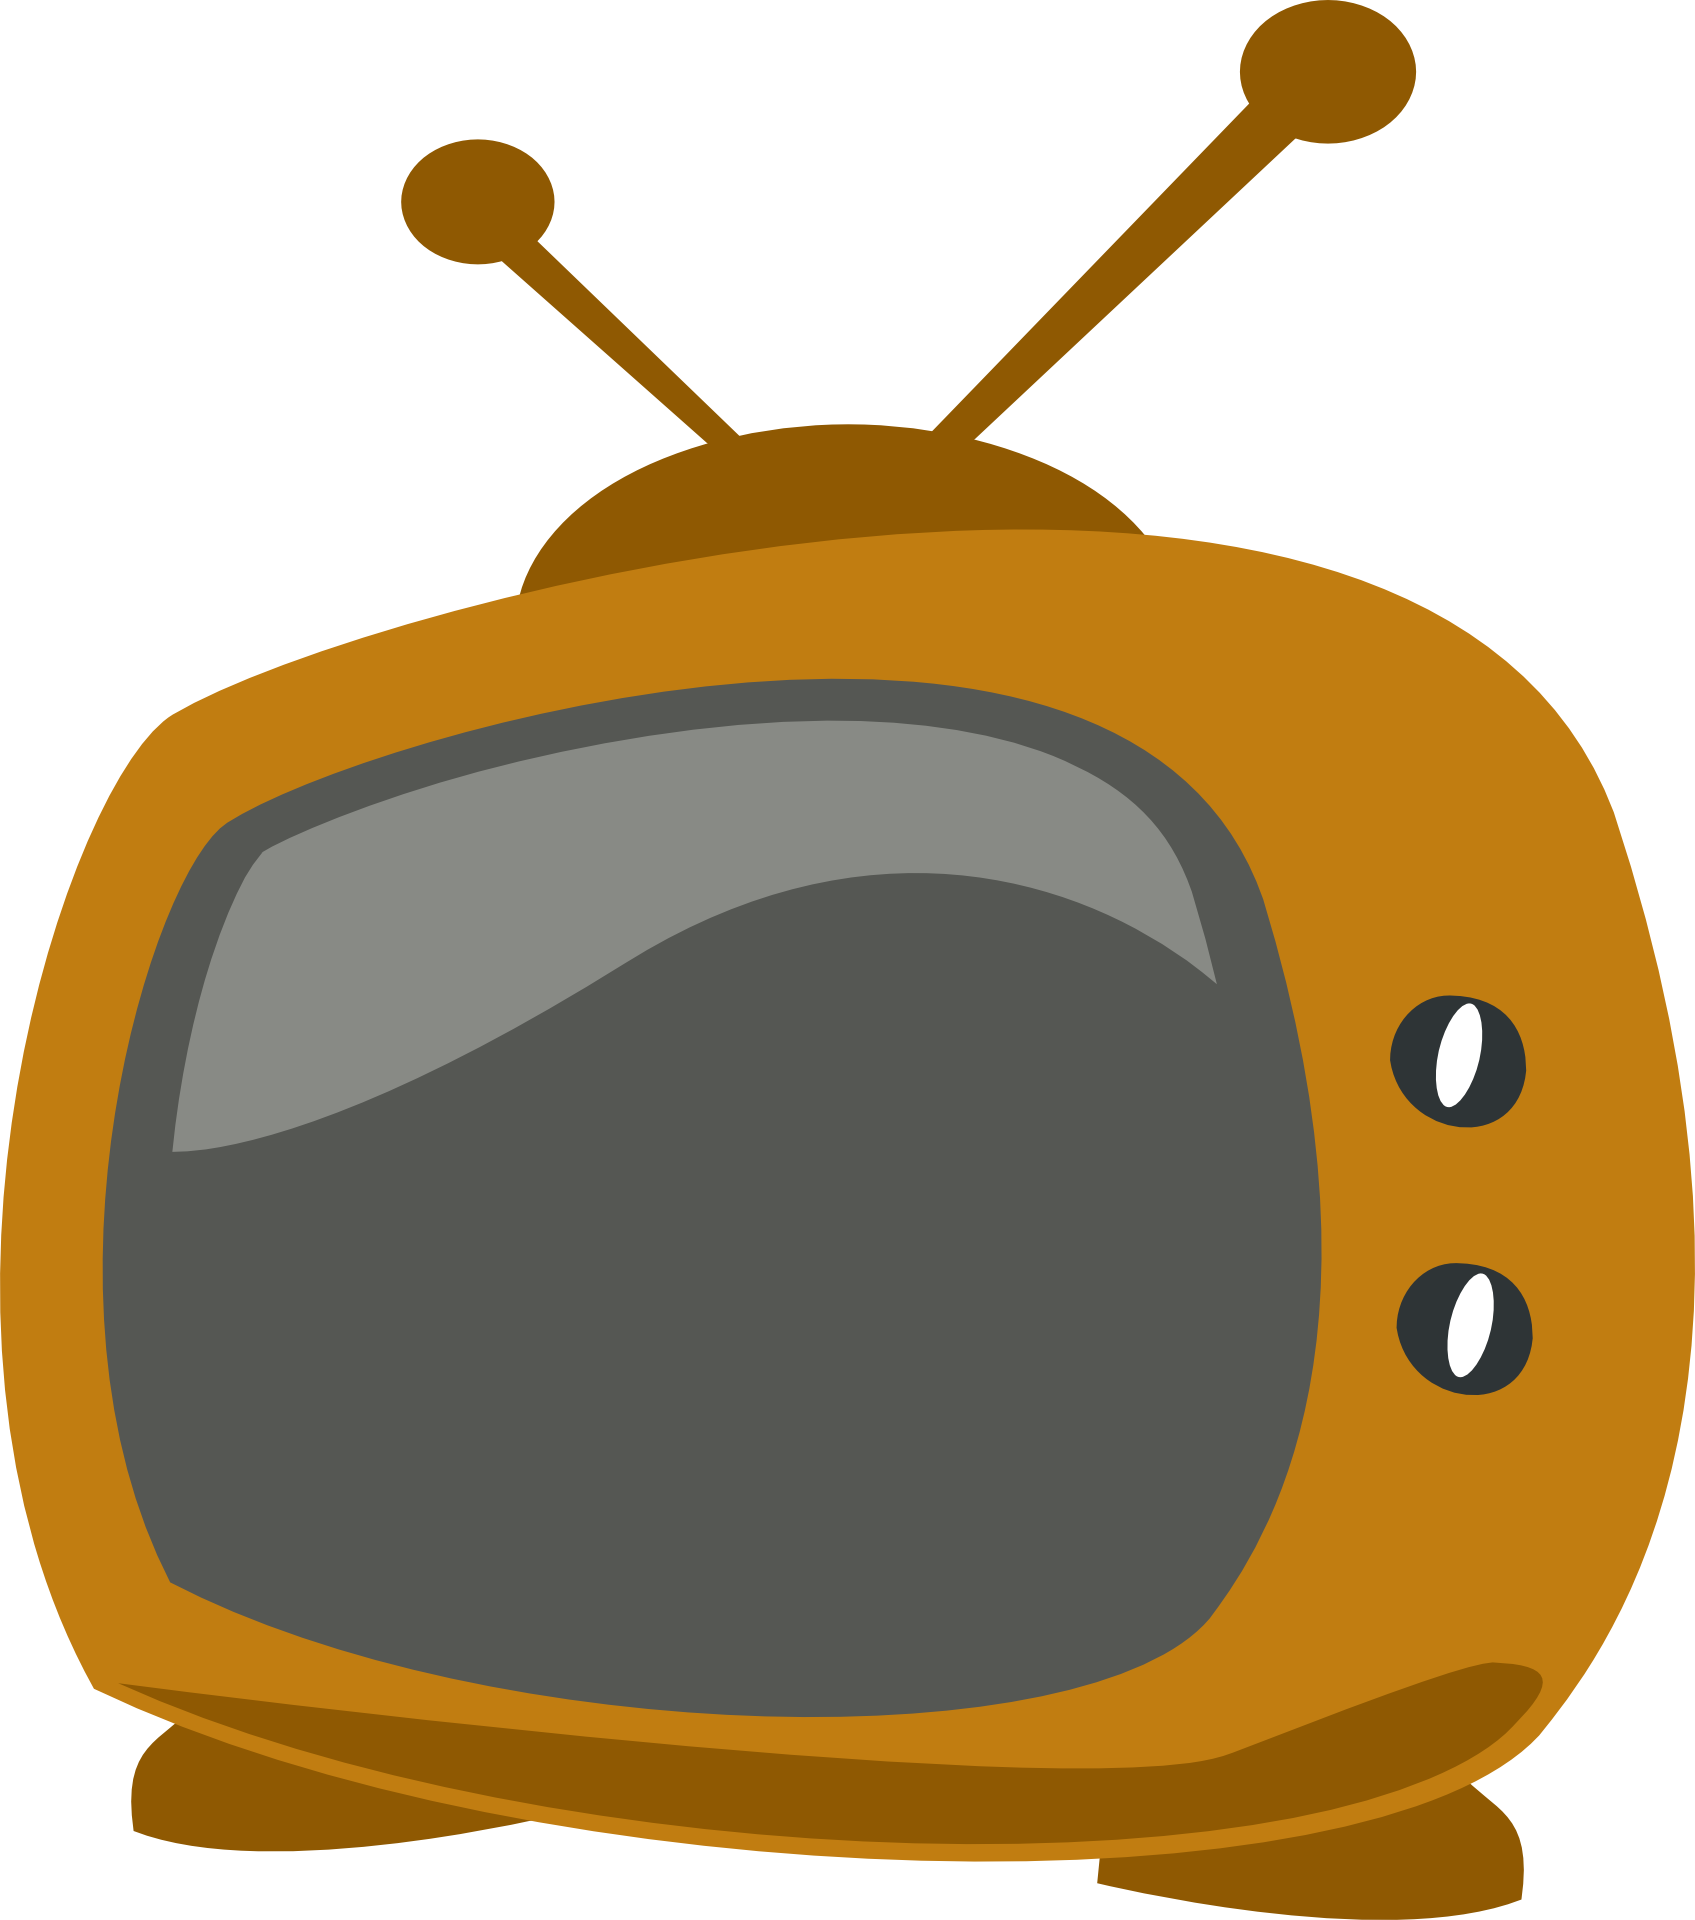 Clipart tv antenna clipart. Television cartoon clip art